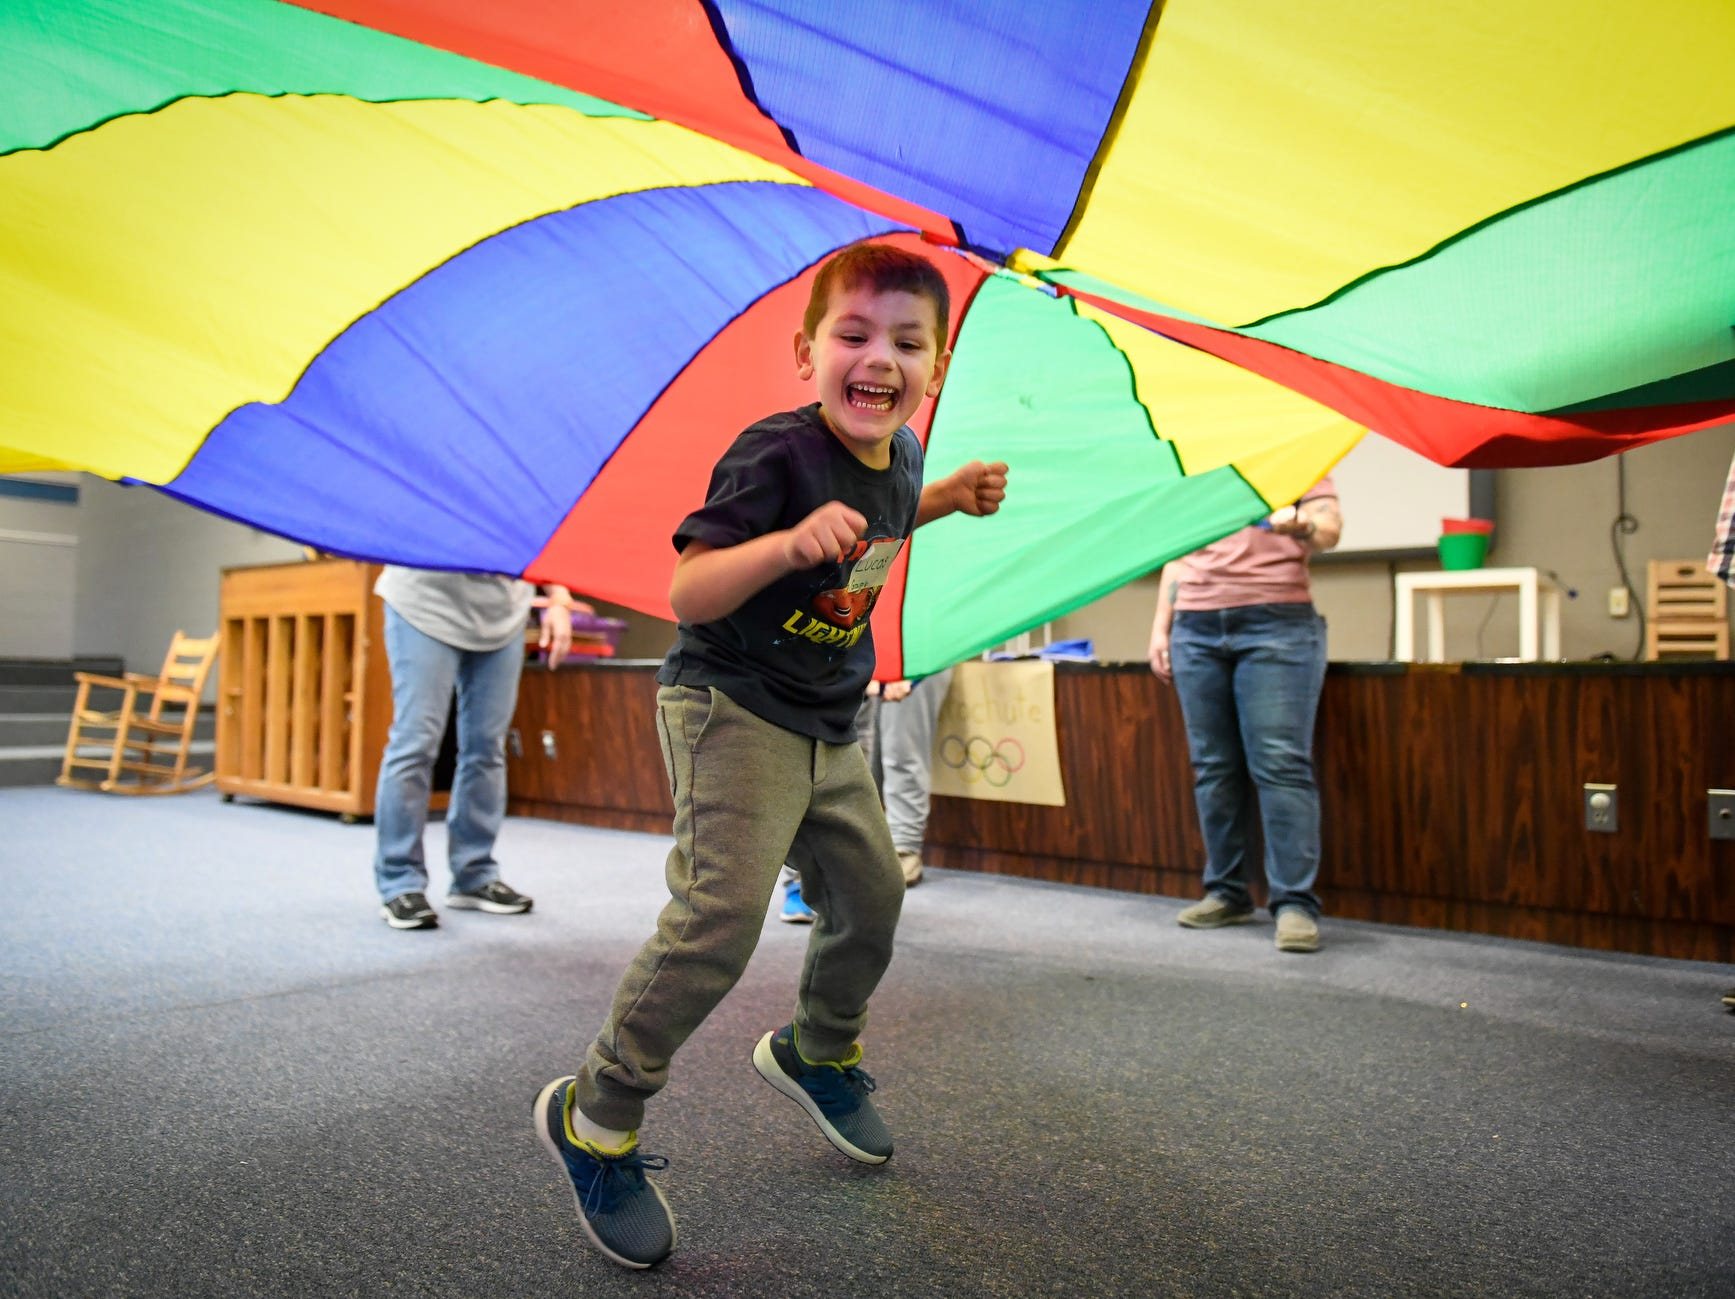 Taking his turn, Lucas Spanner, 9 years-old, plays under a parachute during the Special Olympics Unified Champion School Young Athlete program at Culver Early Learning Center ,Friday, March 22, 2019.